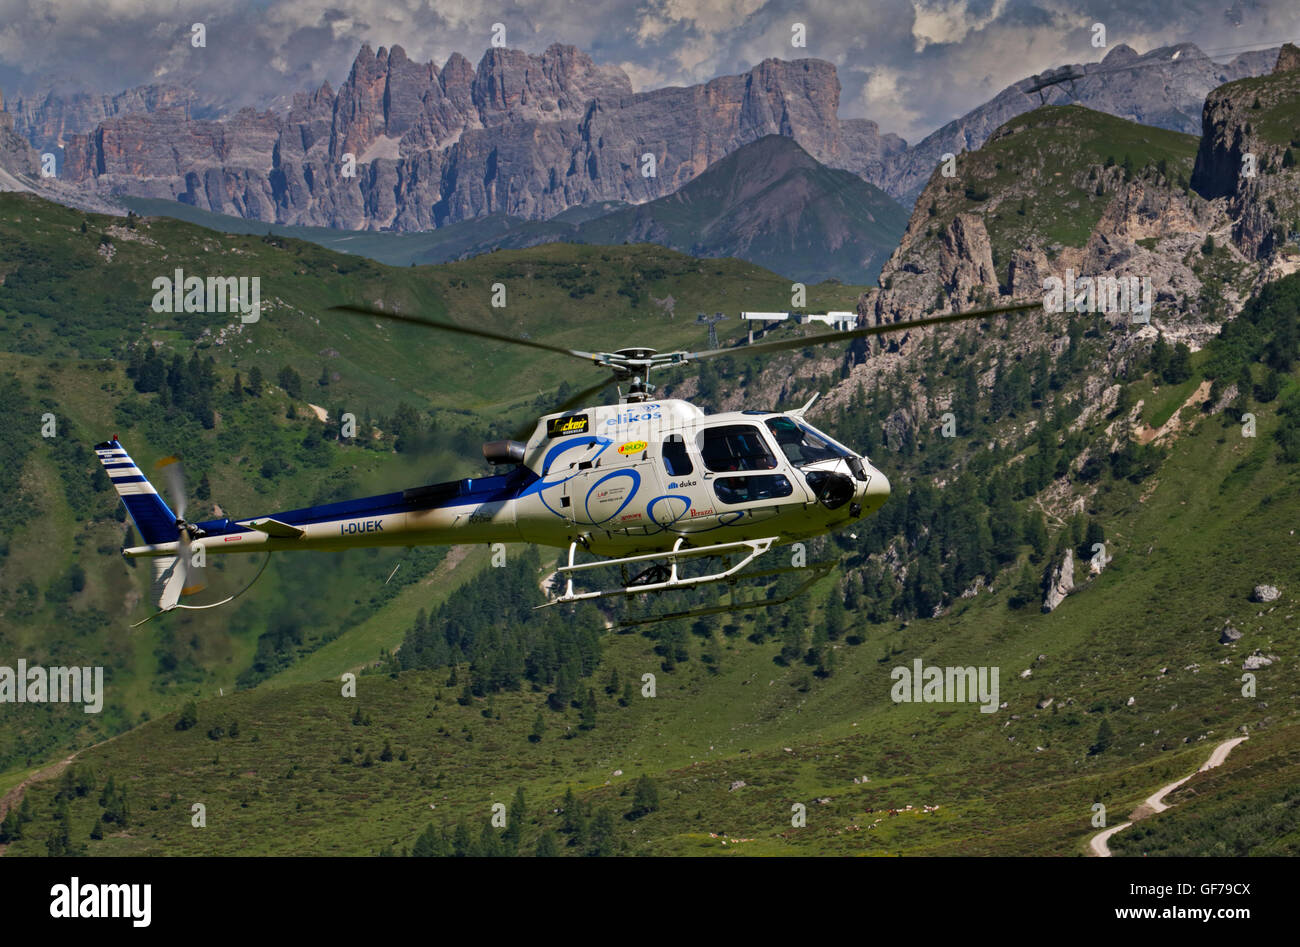 Helicopter in flight over the Pordoi Pass, Dolomites, Italy - Stock Image